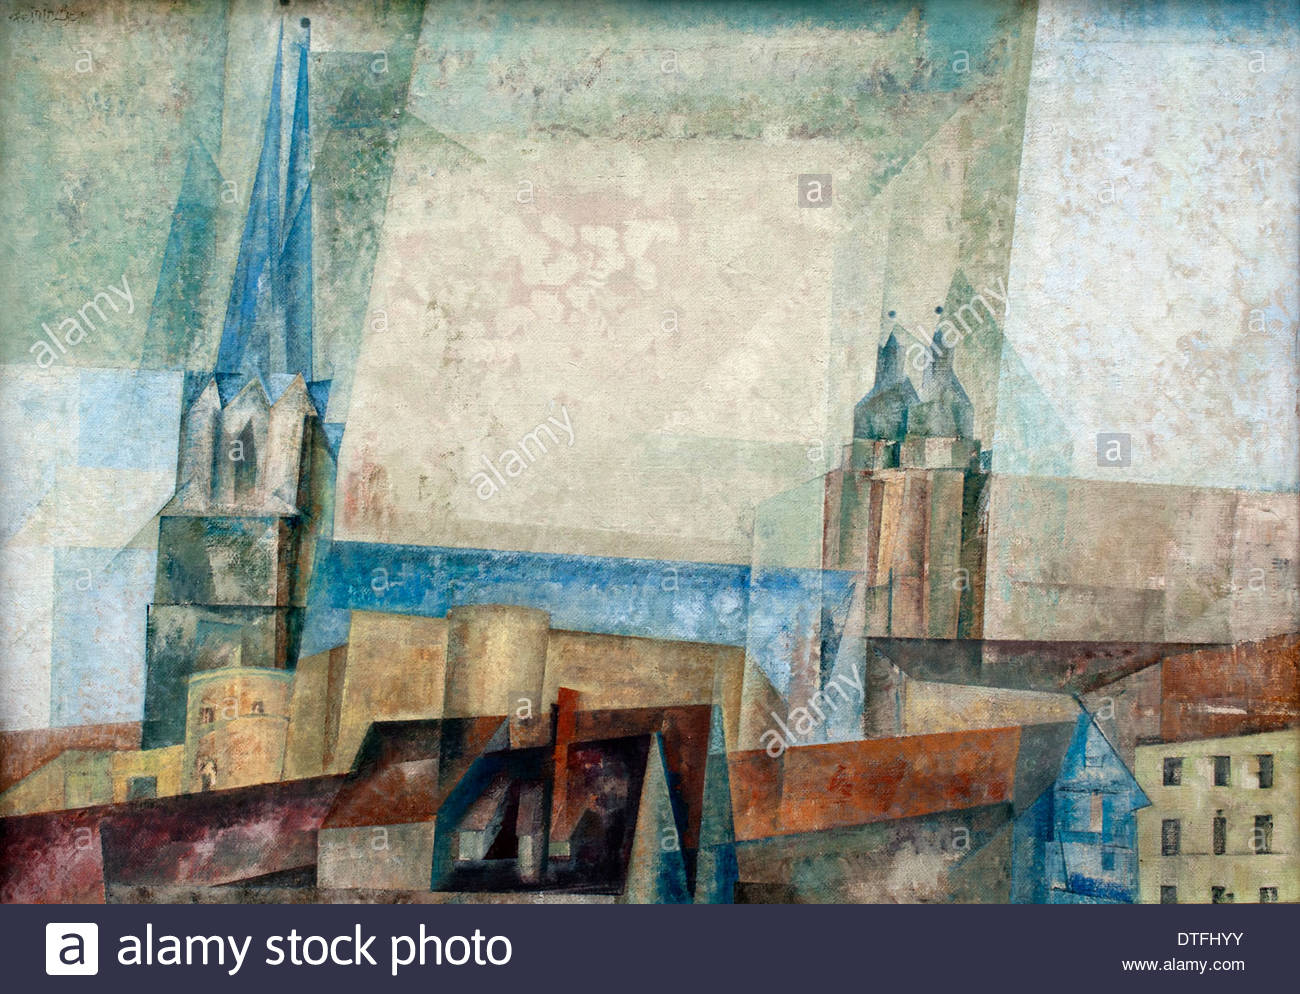 thront ber der stadt halle lyonel feininger 1871 1956 amerikaner vereinigte staaten von. Black Bedroom Furniture Sets. Home Design Ideas